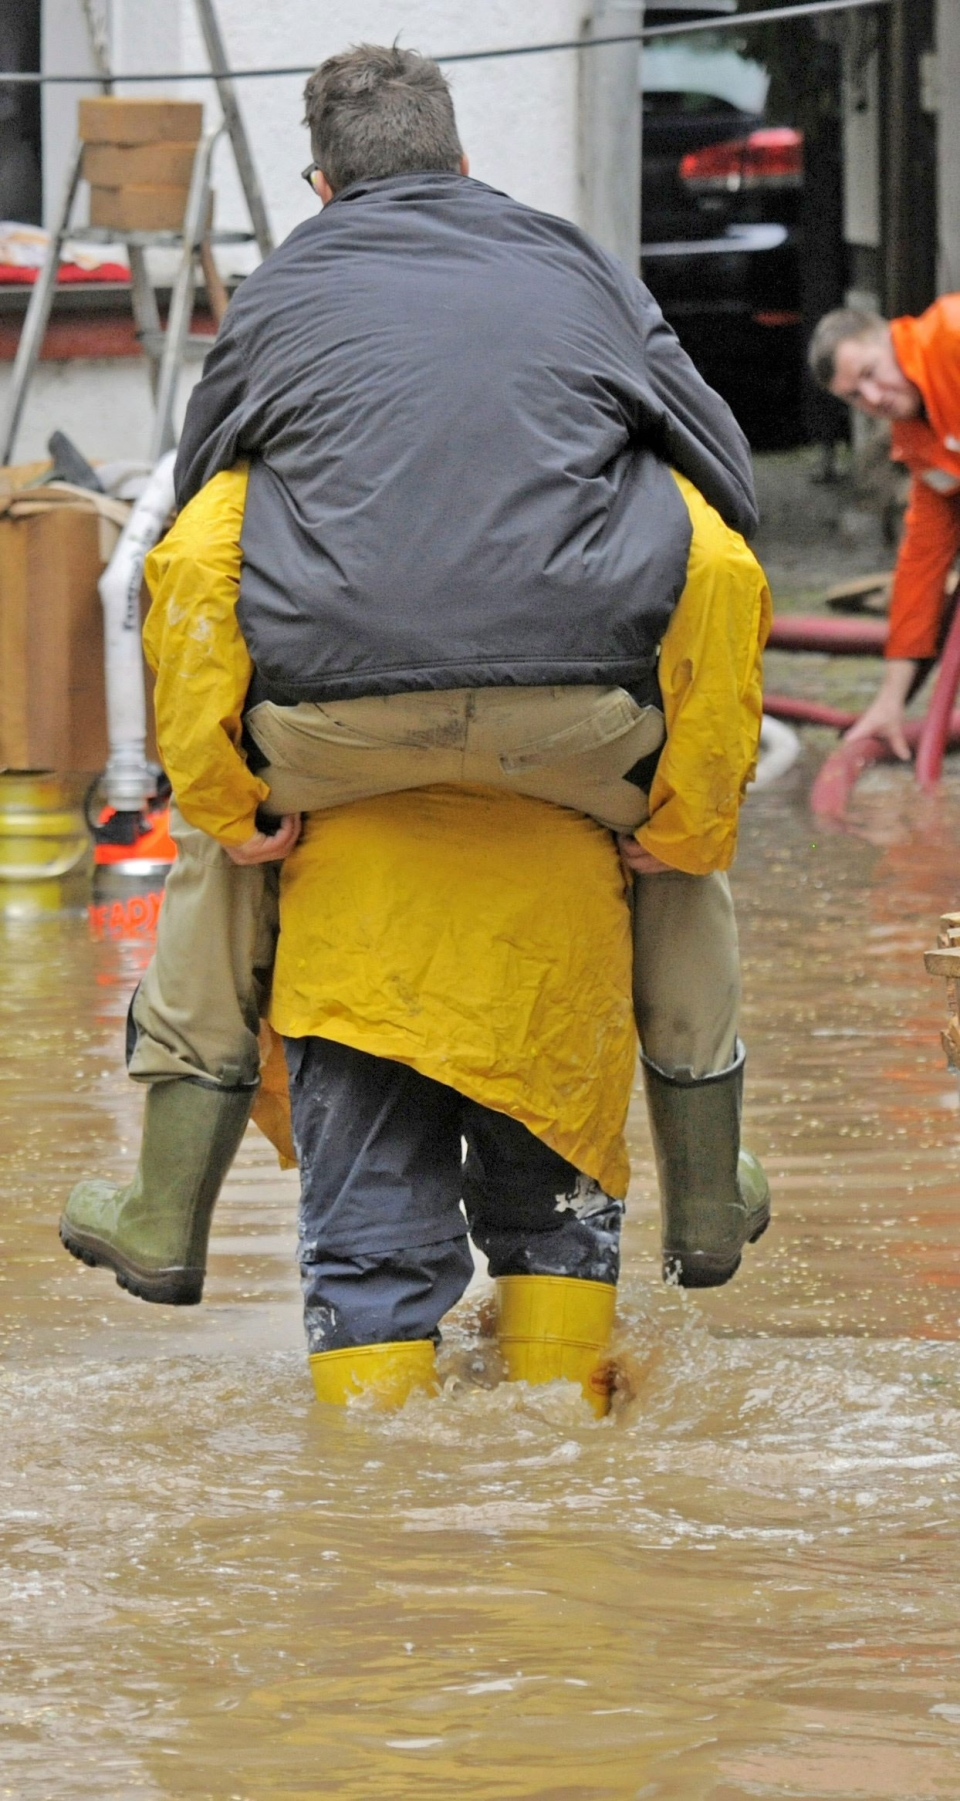 A helper carries a man along a flooded area by river the river Roda in Hainbuecht near Stadtroda, central Germany, Friday, May 31, 2013. (AP / Jens Meyer)